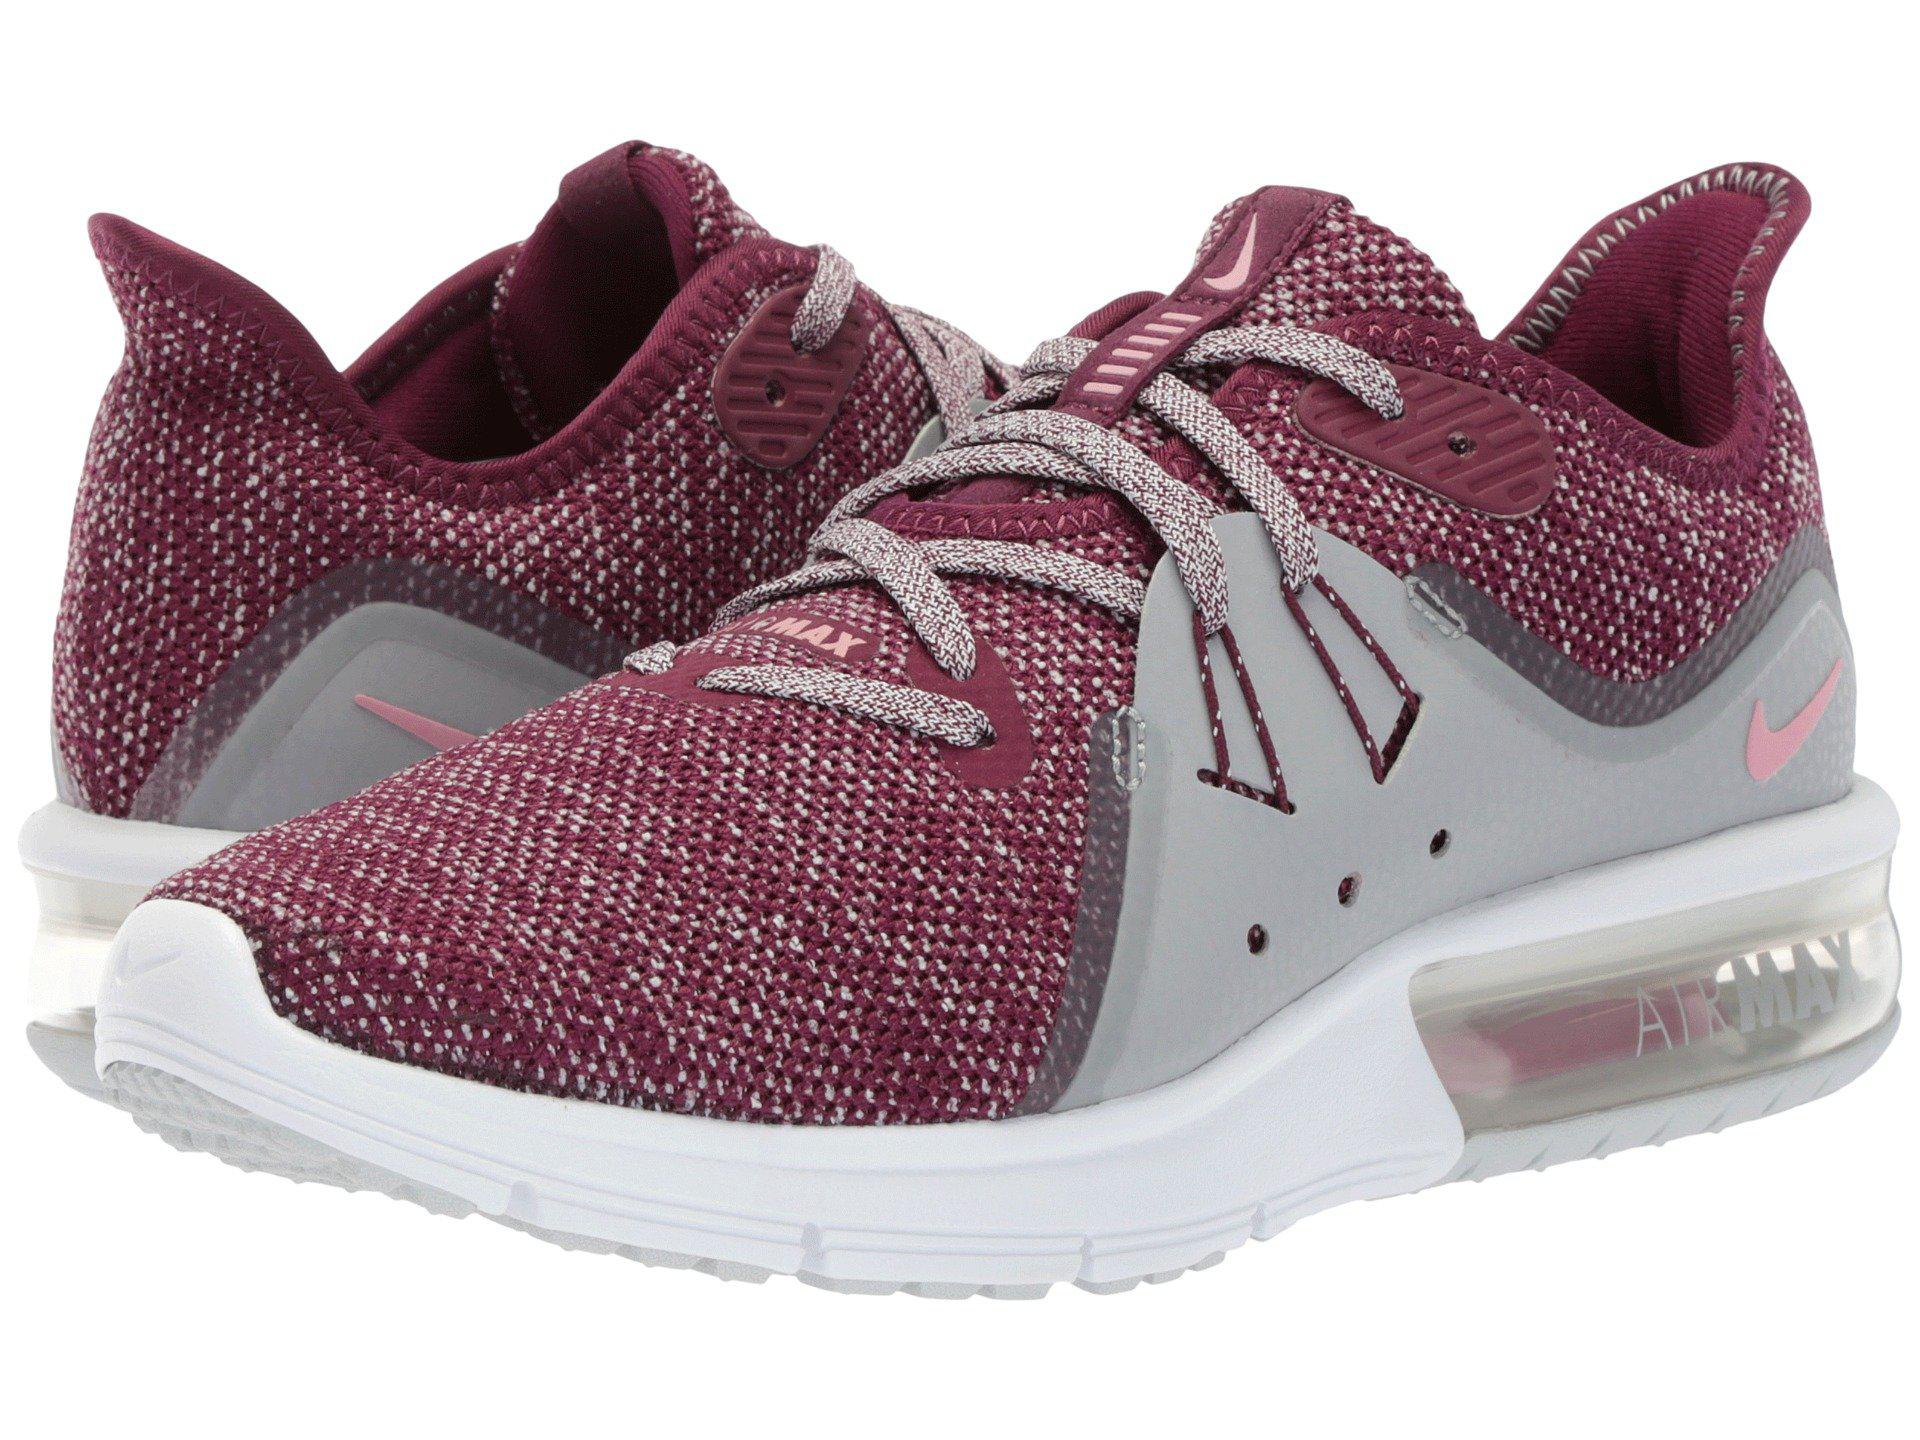 8c2c0231bf5 ... running shoes 8b289sh3ff00aags wolf grey black pink beam anthracite  k3urjld e23f9 a1a35  promo code nike. pink air max sequent 3 4e085 f2e32